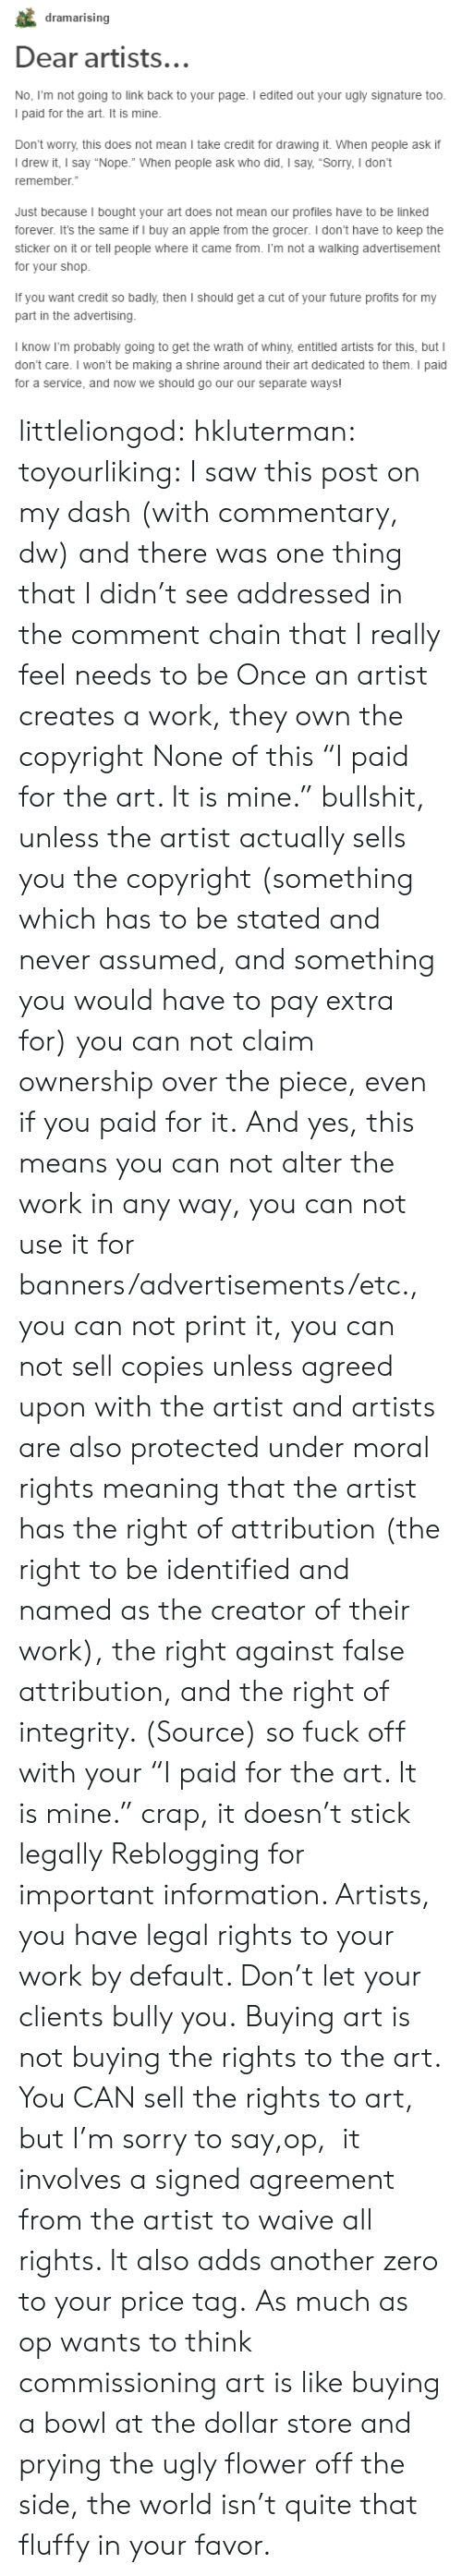 """Shrine: dramarising  Dear artists..  No, Fm not going to link back to your page. I edited out your ugly signature too  I paid for the art. It is mine.  Don't worry, this does not mean I take credit for drawing it. When people ask if  I drew it, I say """"Nope."""" When people ask who did, I say, """"Sorry, I don't  remember.  Just because I bought your art does not mean our profiles have to be linked  forever. It's the same if I buy an apple from the grocer. I don't have to keep the  sticker on it or tell people where it came from. I'm not a walking advertisement  for your shop.  If you want credit so badly,then I should get a cut of your tuture profmts for my  part in the advertising  I know I'm probably going to get the wrath of whiny, entitled artists for this, but I  don't care. I won't be making a shrine around their art dedicated to them. I paid  for a service, and now we should go our our separate ways! littleliongod: hkluterman:  toyourliking:  I saw this post on my dash (with commentary, dw) and there was one thing that I didn't see addressed in the comment chain that I really feel needs to be Once an artist creates a work, they own the copyright None of this""""I paid for the art. It is mine."""" bullshit, unless the artist actually sells you the copyright (something which has to be stated and never assumed, and something you would have to pay extra for) you can not claim ownership over the piece, even if you paid for it. And yes, this means you can not alter the work in any way, you can not use it for banners/advertisements/etc., you can not print it, you can not sell copiesunless agreed upon with the artist and artists are also protected under moral rights meaning that the artist has the right of attribution (the right to be identified and named as the creator of their work), the right against false attribution, and the right of integrity. (Source) so fuck off with your """"I paid for the art. It is mine."""" crap, it doesn't stick legally  Reblogging for important informati"""